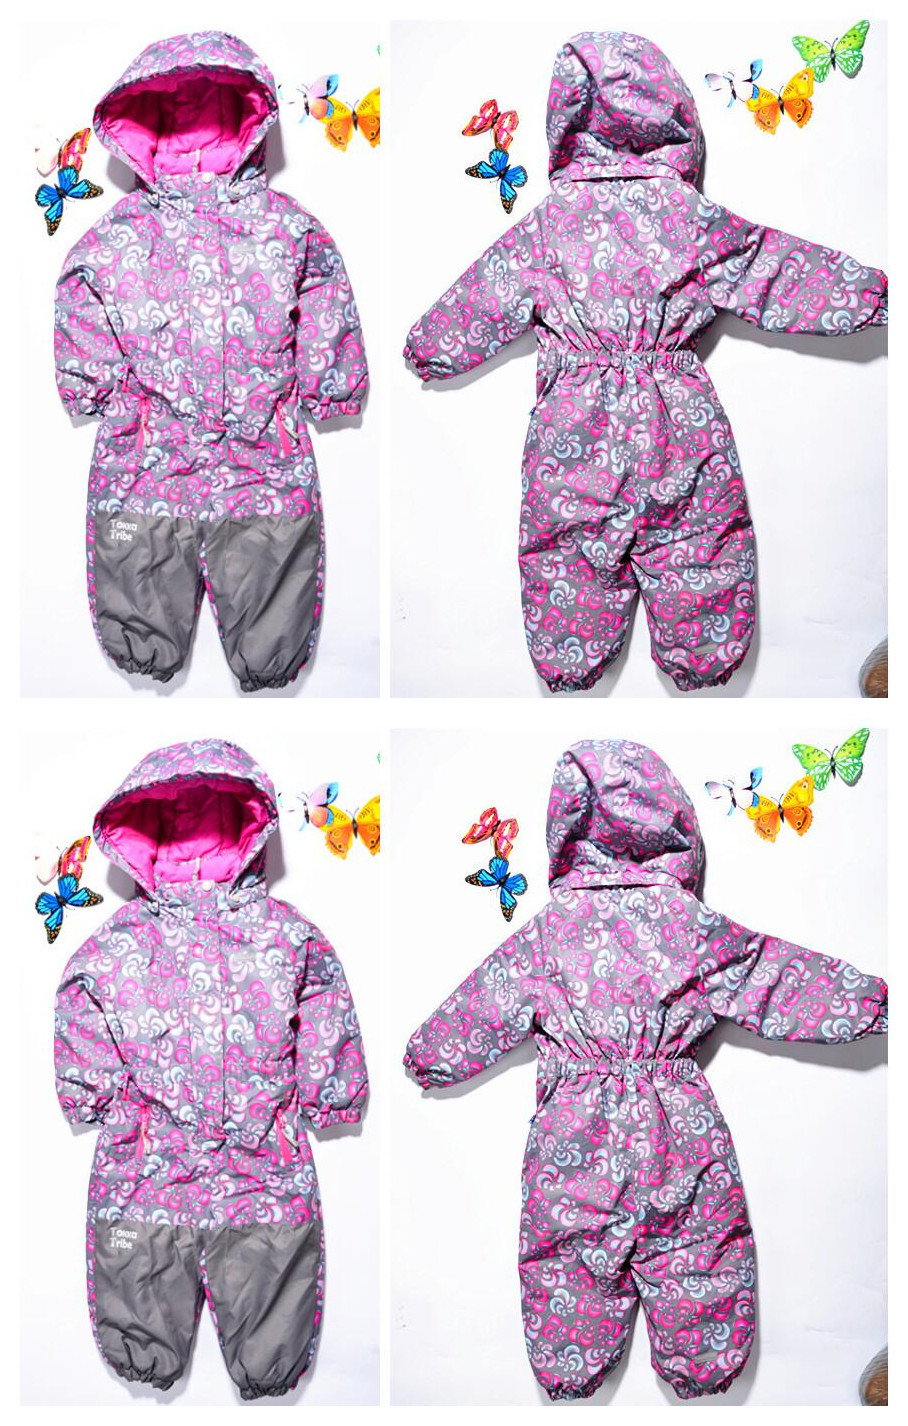 2018 Sale Warm Winter Suit Brand Children's Leotard Romper Teddy Thick Coveralls Assault Boys And Girls High end Outdoor Ski